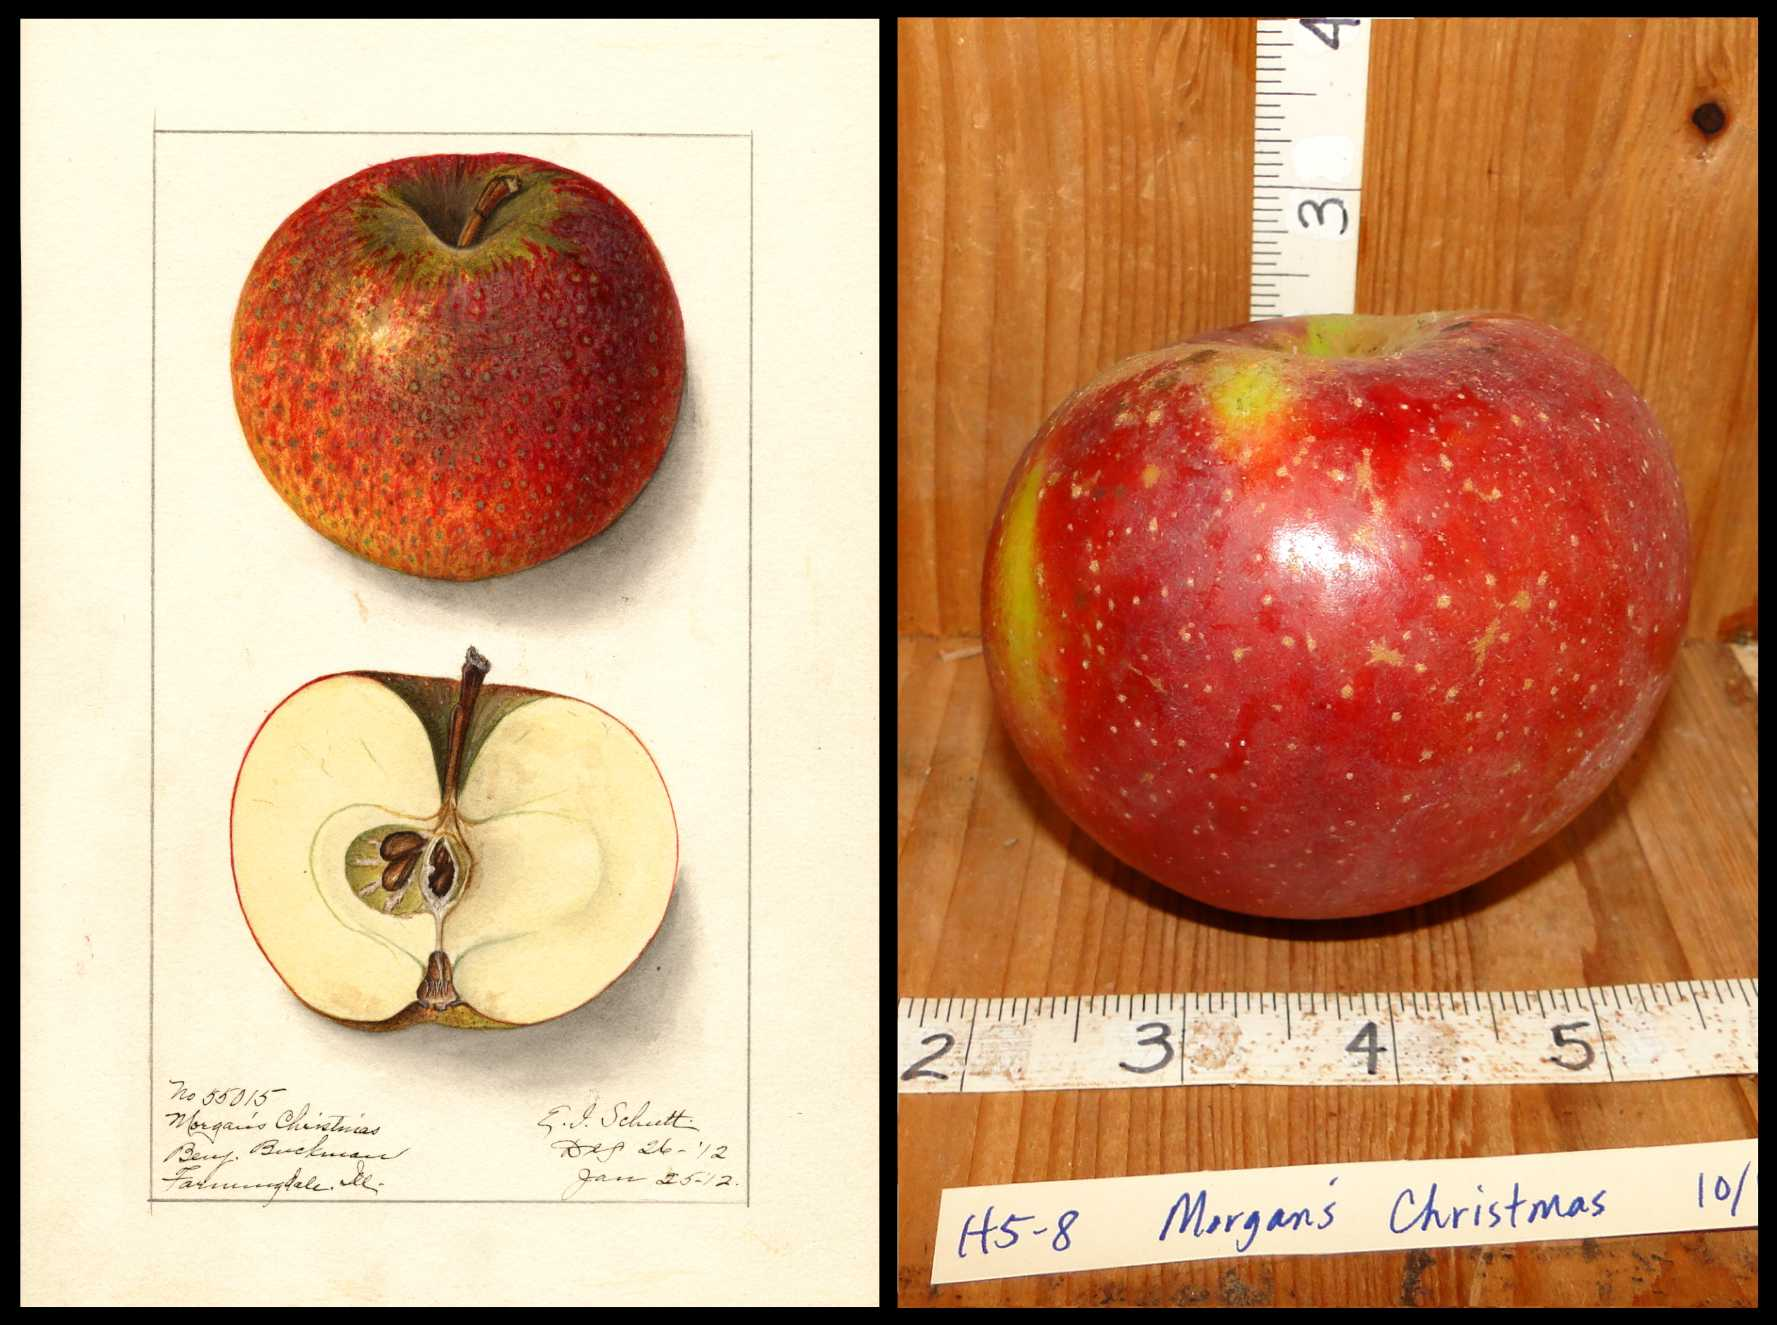 red apple with patches of yellow and small yellow spots